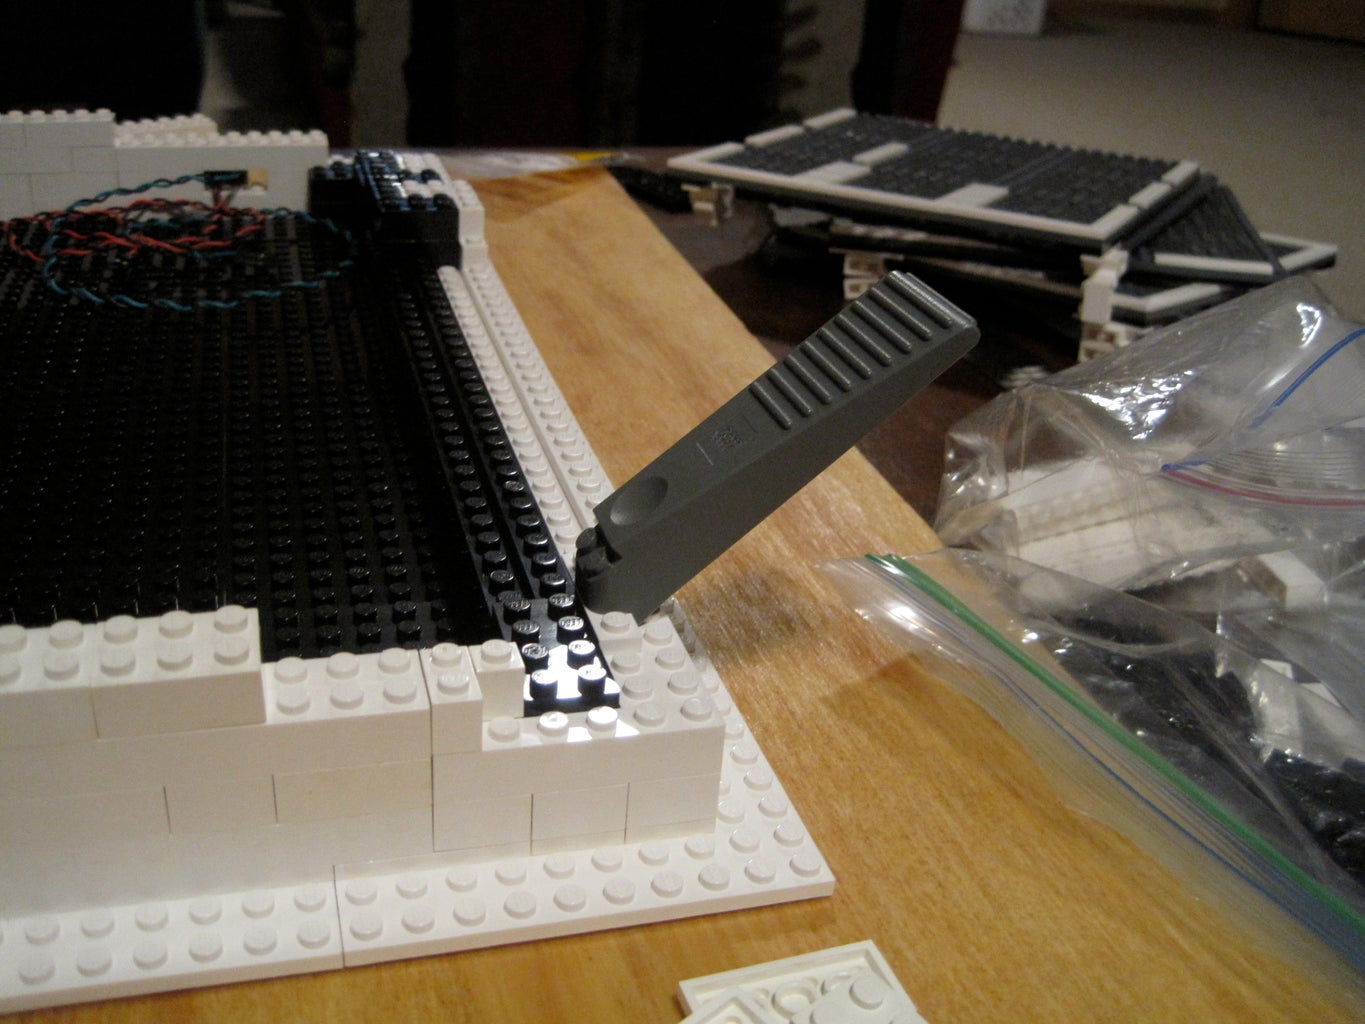 How to Order Lego Parts - Ordering